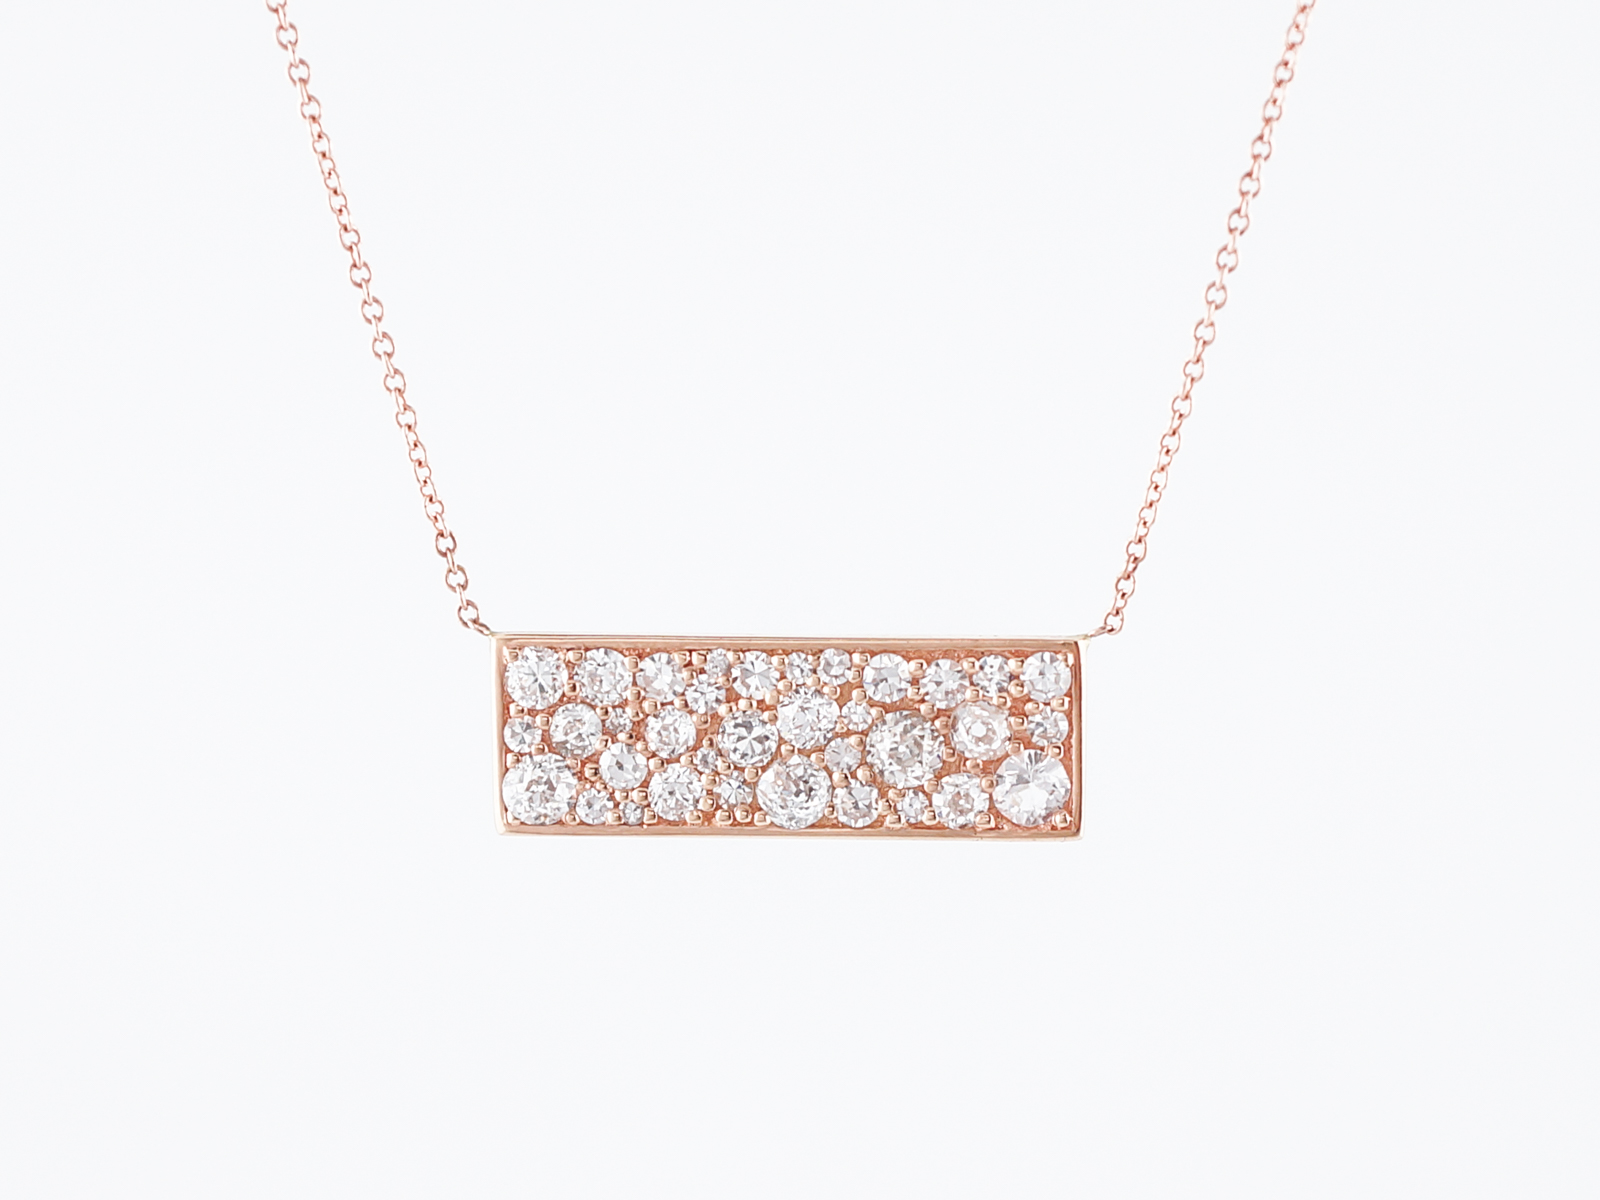 Modern Necklace 1.46 Single Cuts, Old European Cut, & Old Mine Cut Diamonds in 18k Rose Gold-1